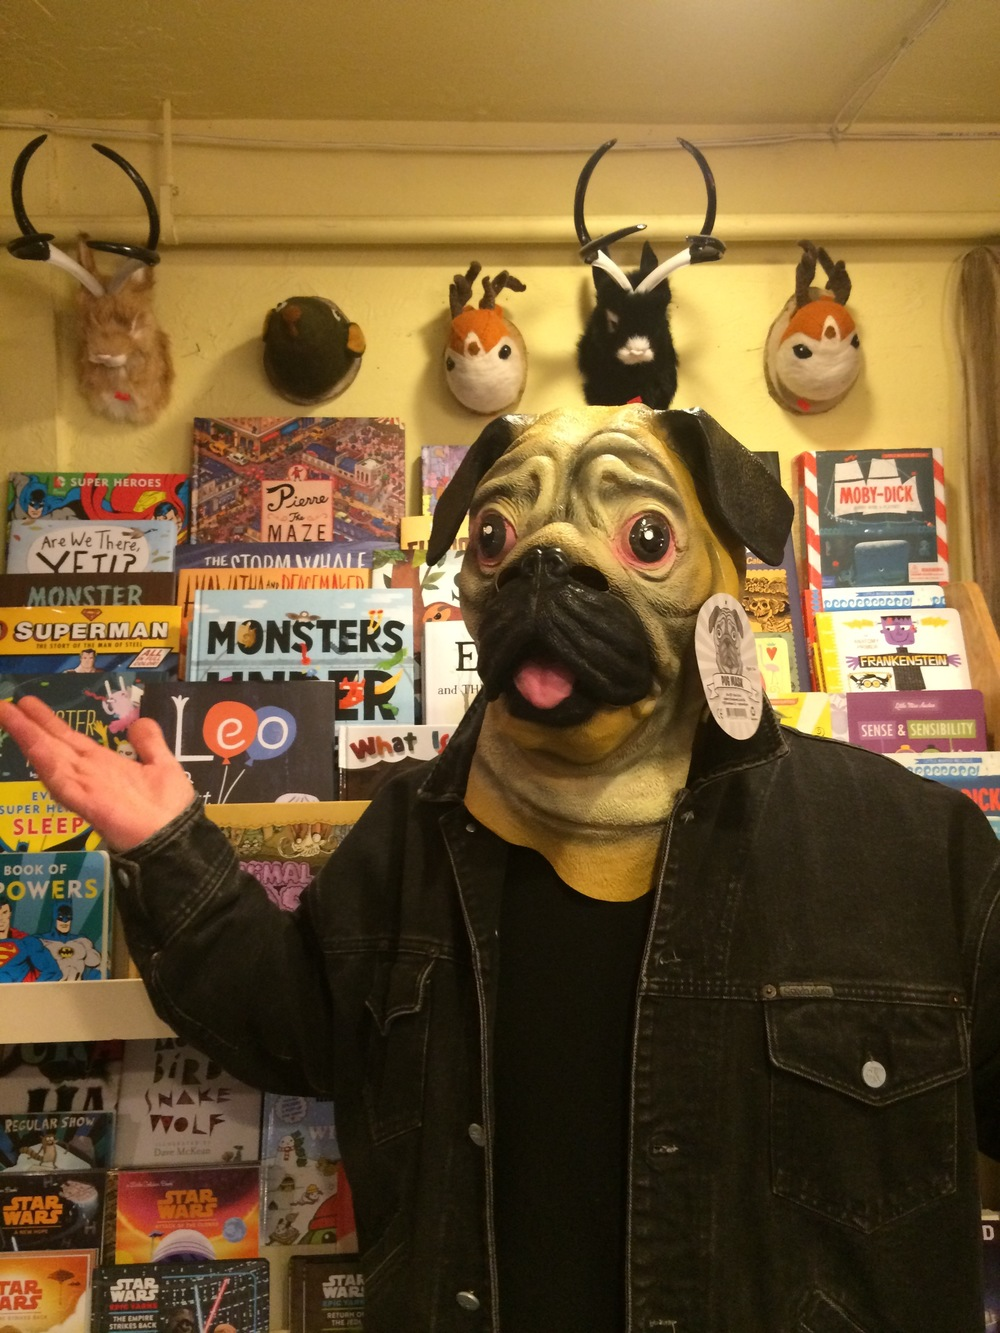 Marc models a pug mask at  Boo Radley's in Spokane, WA , during one of our scout around town outings. (PS. Aren't those jackalopes awesome? I love jackalopes, they're one of my spirit animals...just ask my Dad, Donald.)